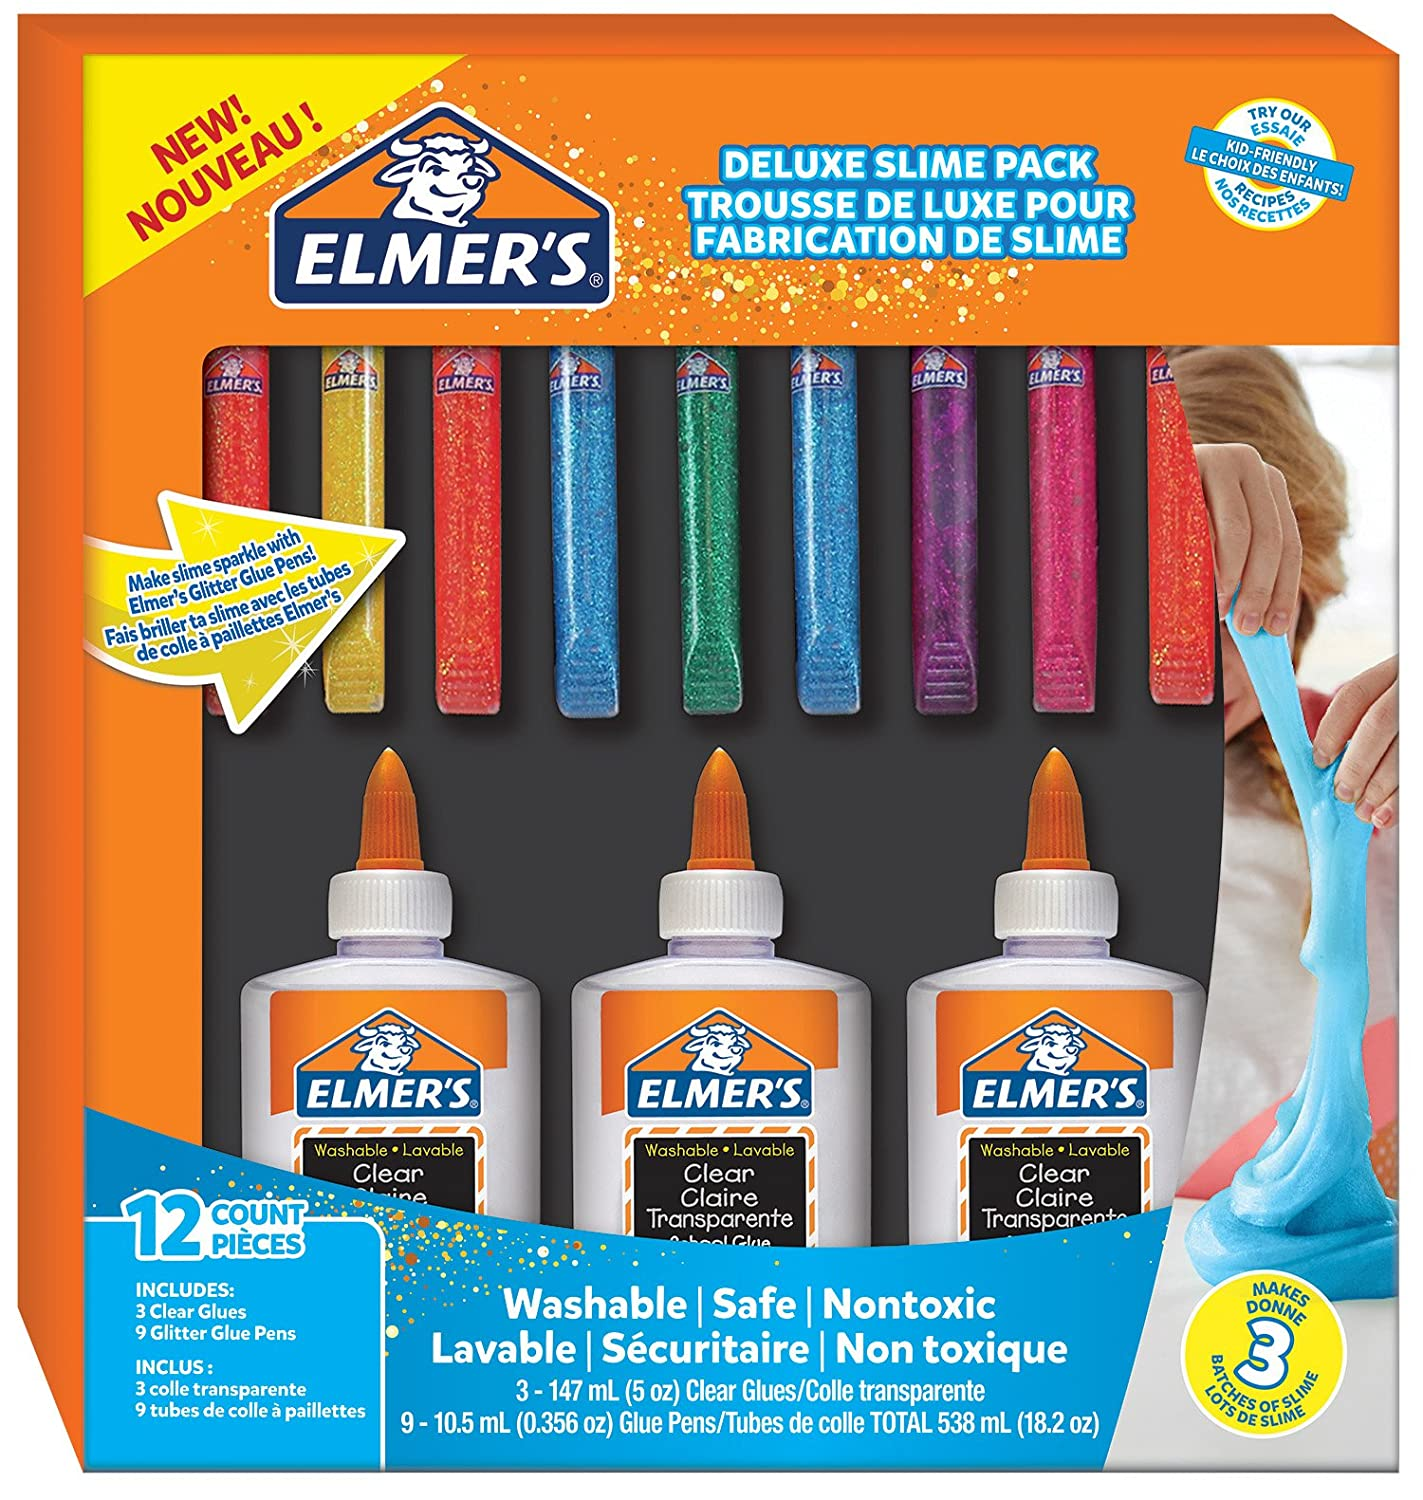 Elmer's Glue Kit, Clear School Glue & Blue Glitter Glue, 4 Count Elmer's Glue Kit Sanford 2022906